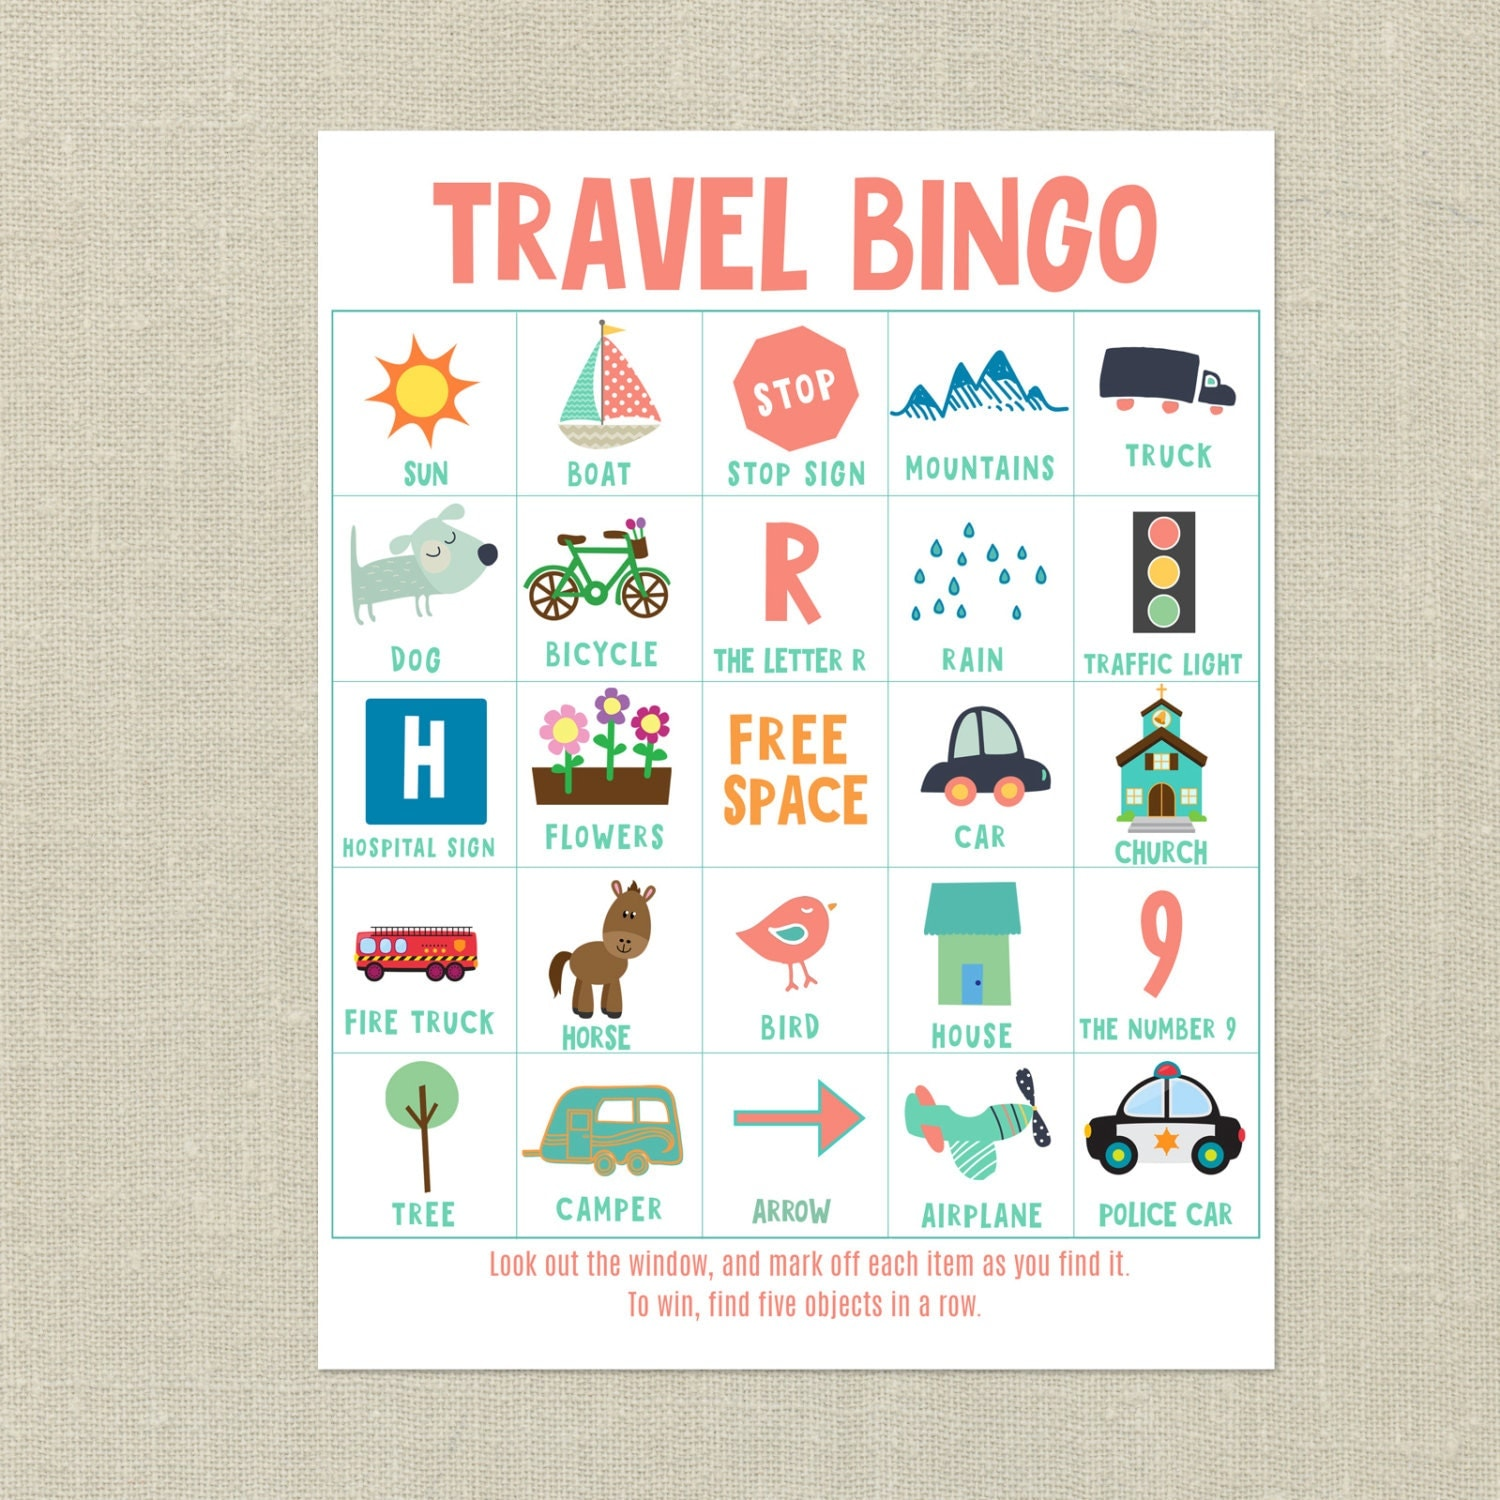 It's just a picture of Agile Printable Travel Bingo